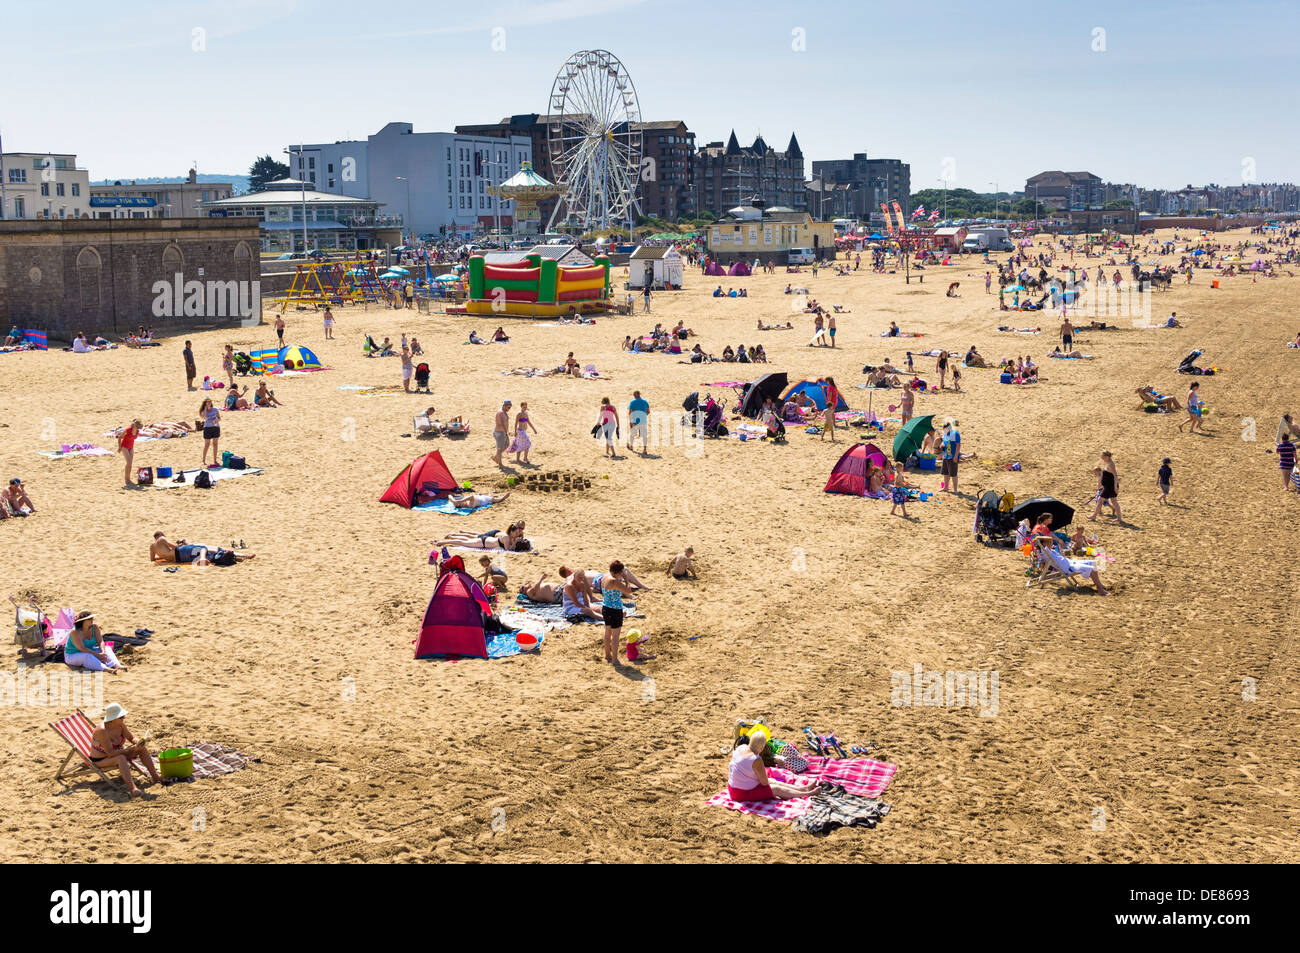 Weston Super Mare, Somerset seaside beach, UK, in estate Immagini Stock